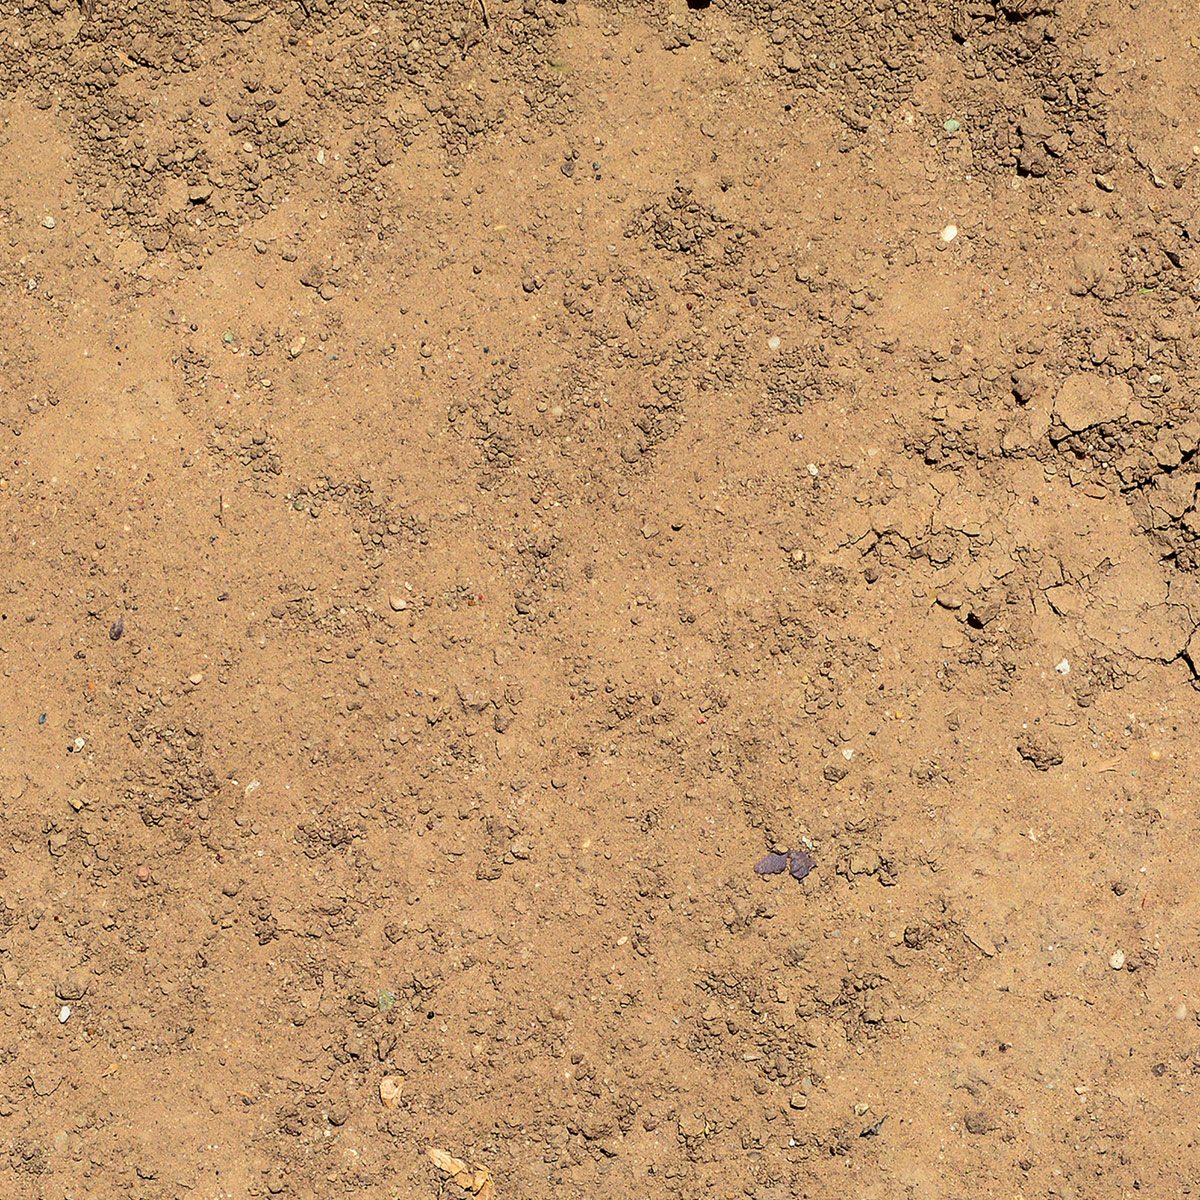 close up of dirt